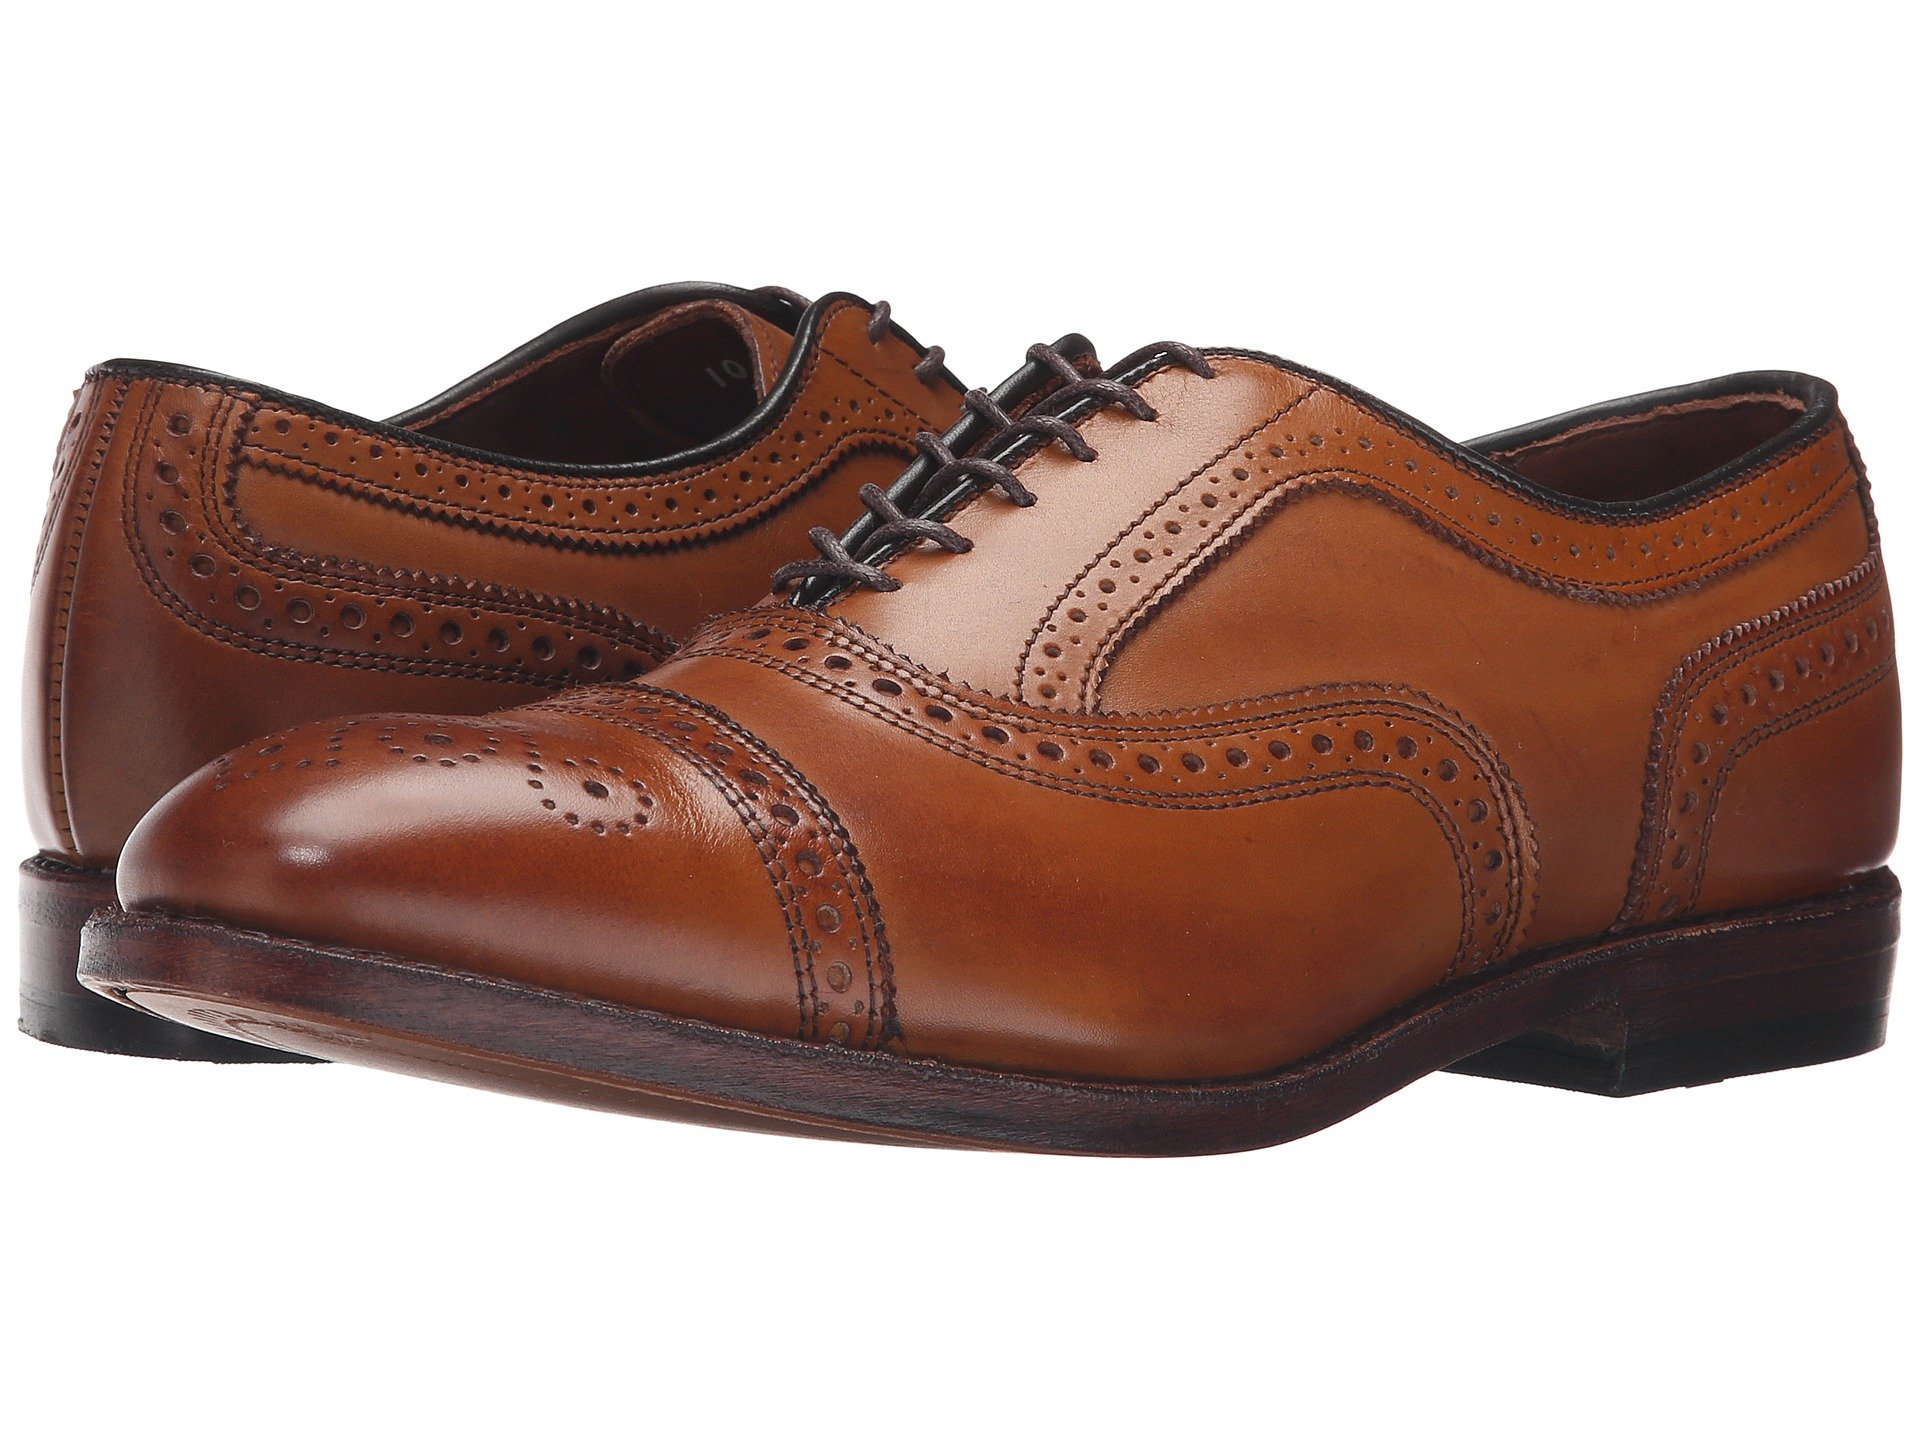 Allen Edmonds Strand in Walnut Calf